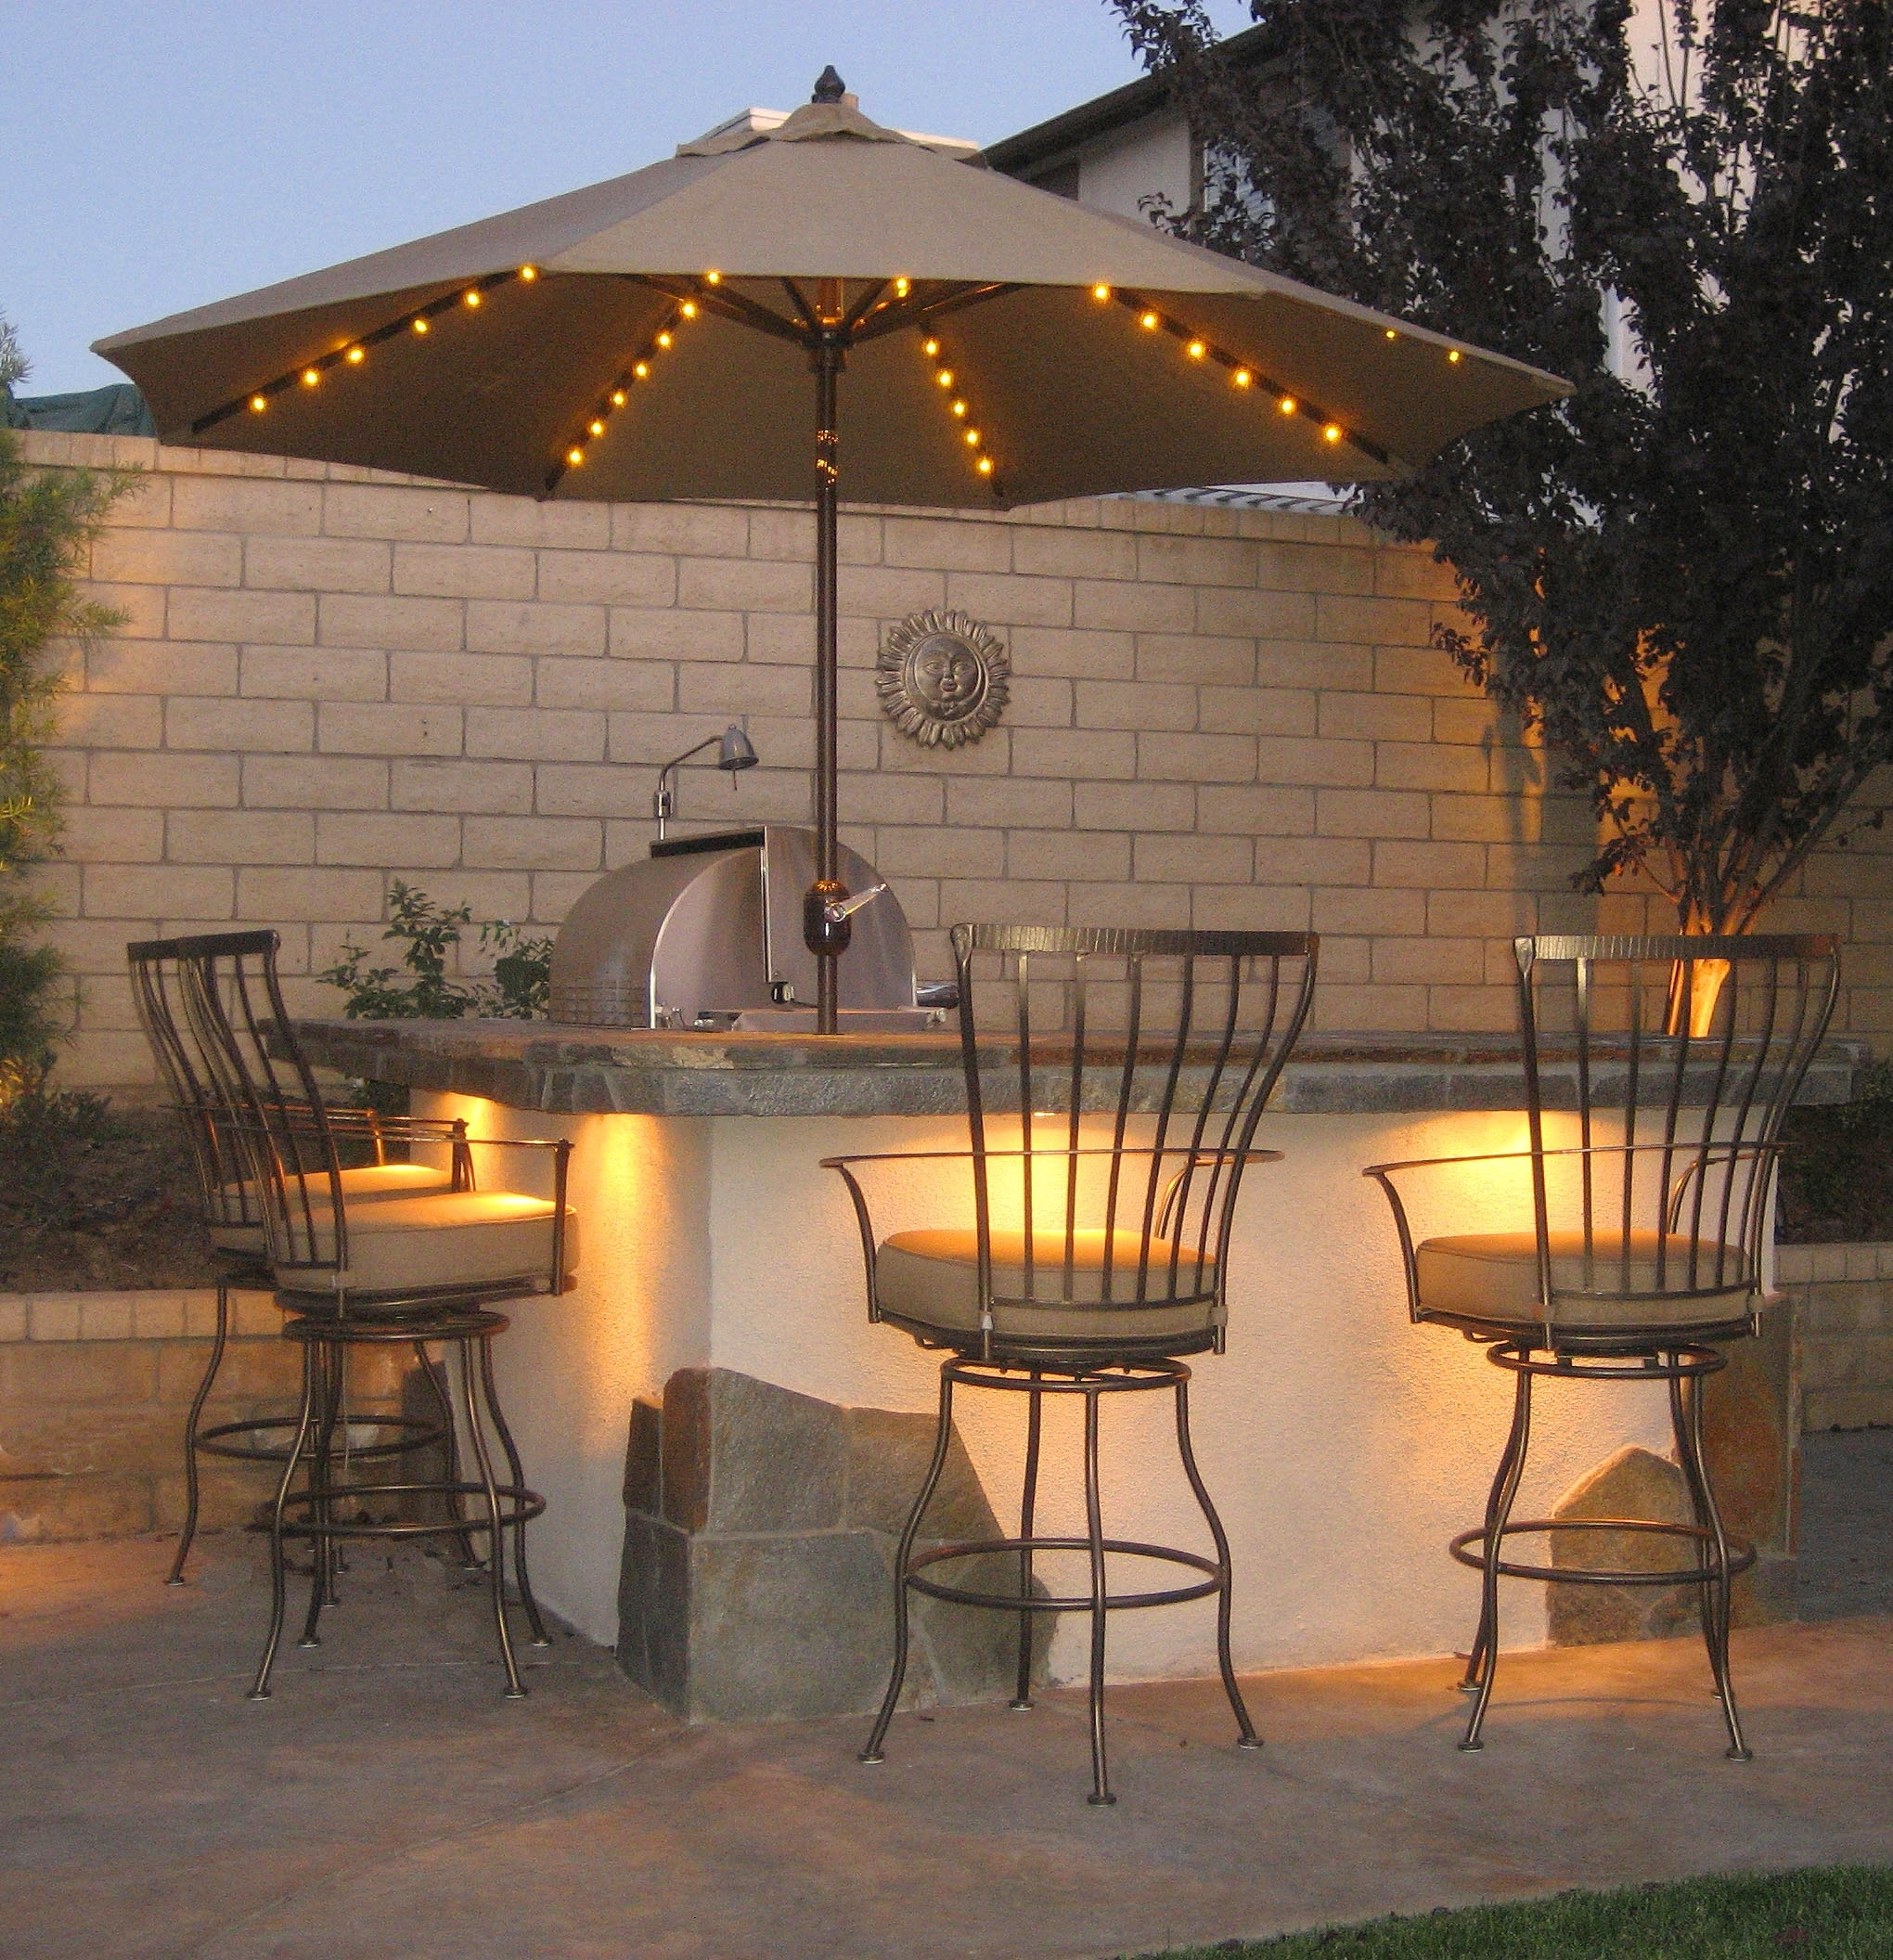 Lighted Patio Umbrellas — Mistikcamping Home Design : Different In Newest Patio Umbrella Lights (View 10 of 20)